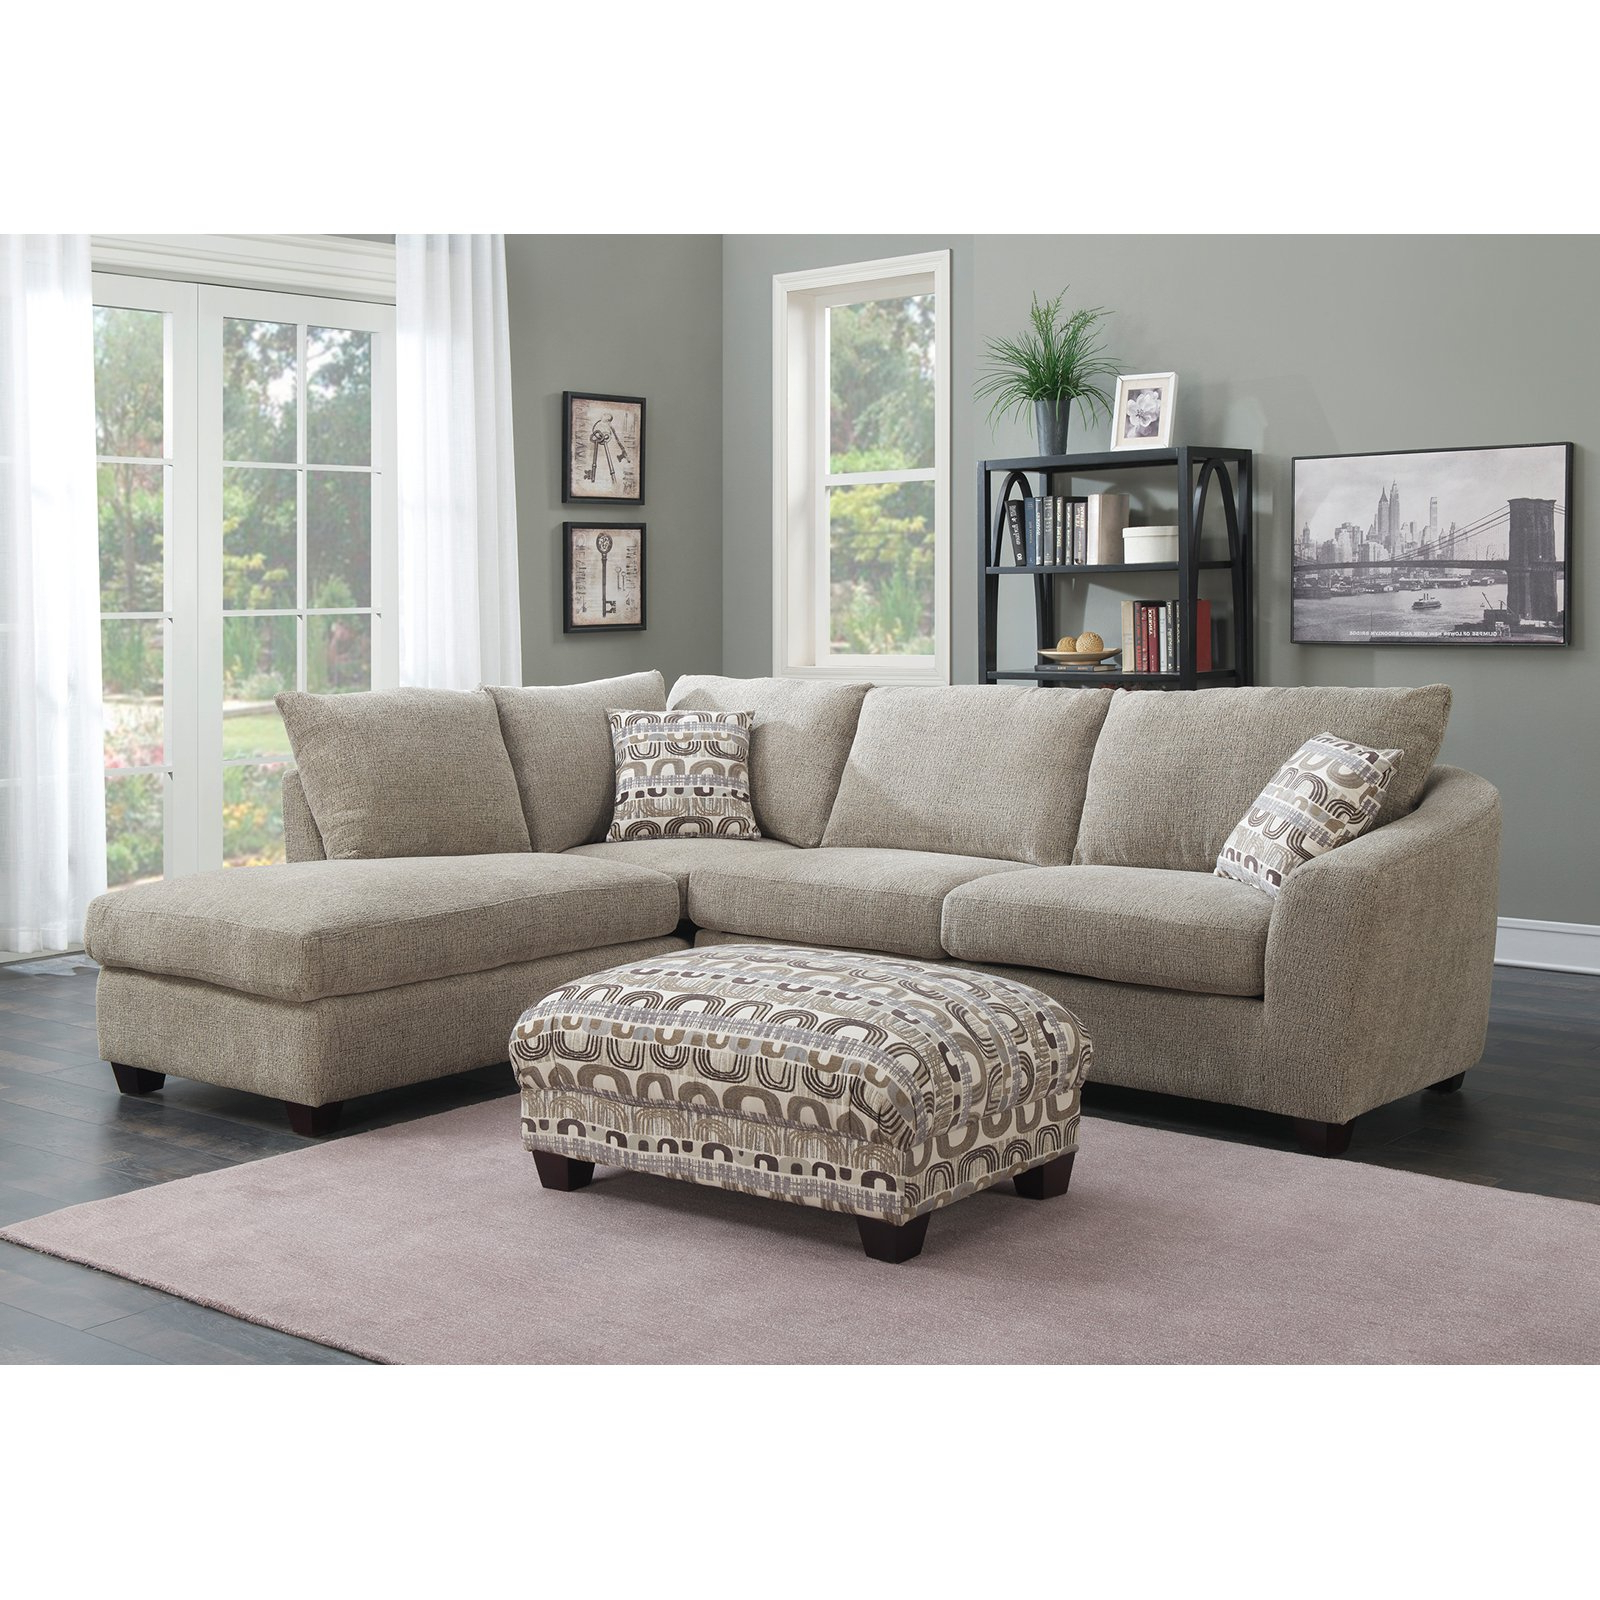 Most Up To Date 2 Piece Sectional With Chaise – Tidex Inside Delano 2 Piece Sectionals With Raf Oversized Chaise (View 14 of 20)